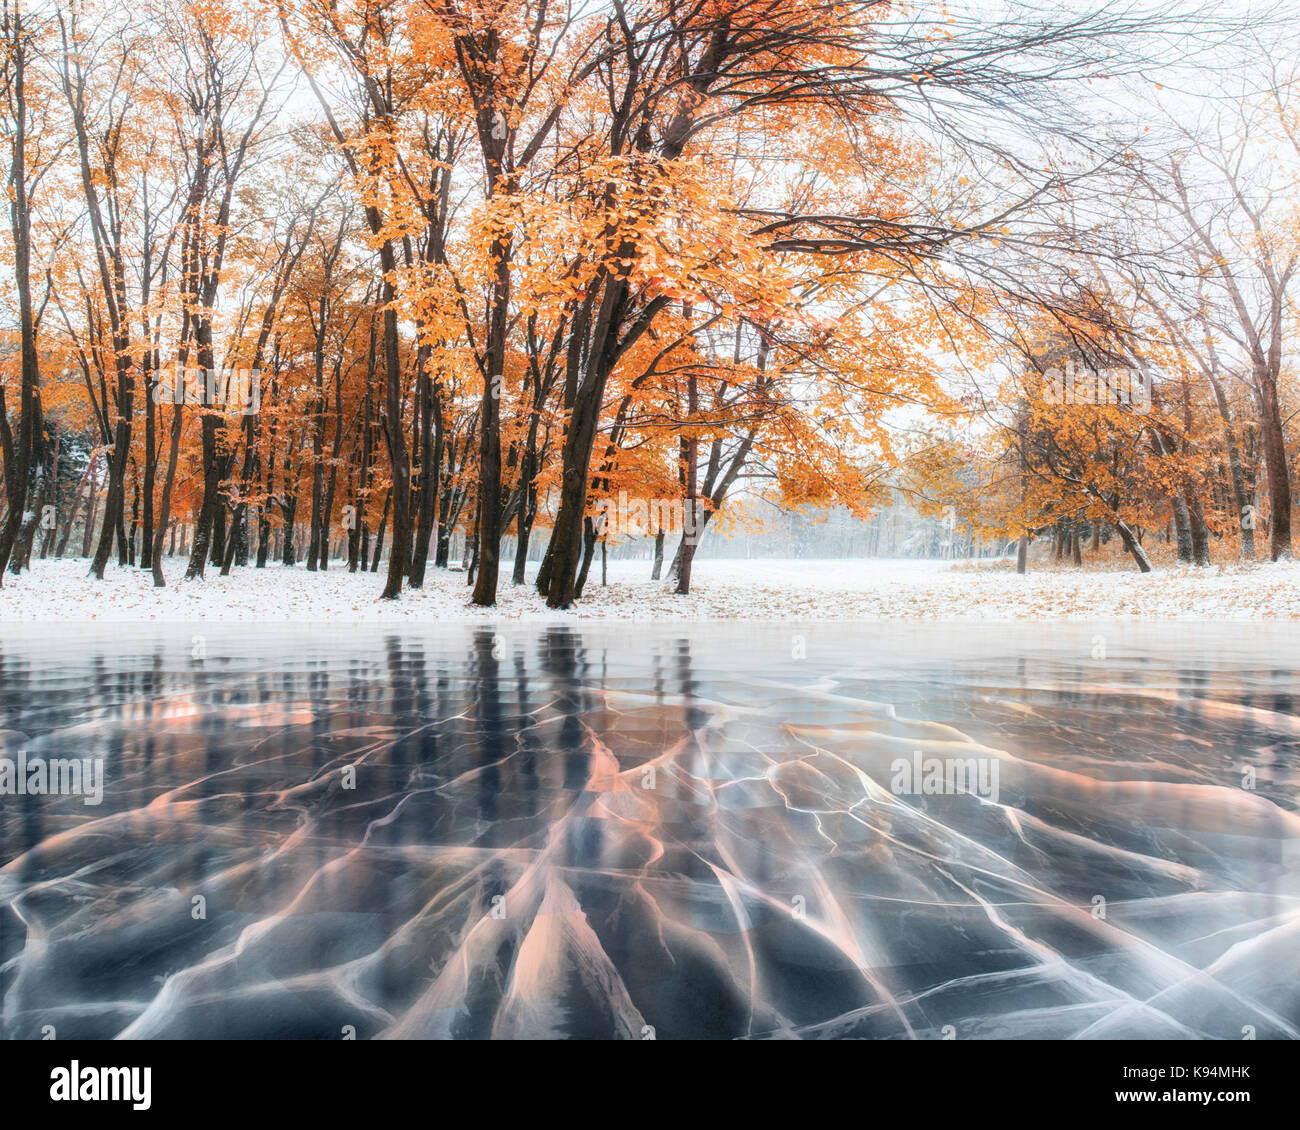 October mountain beech forest with first winter snow and blue ice and cracks on the surface of the ice. Winter. - Stock Image